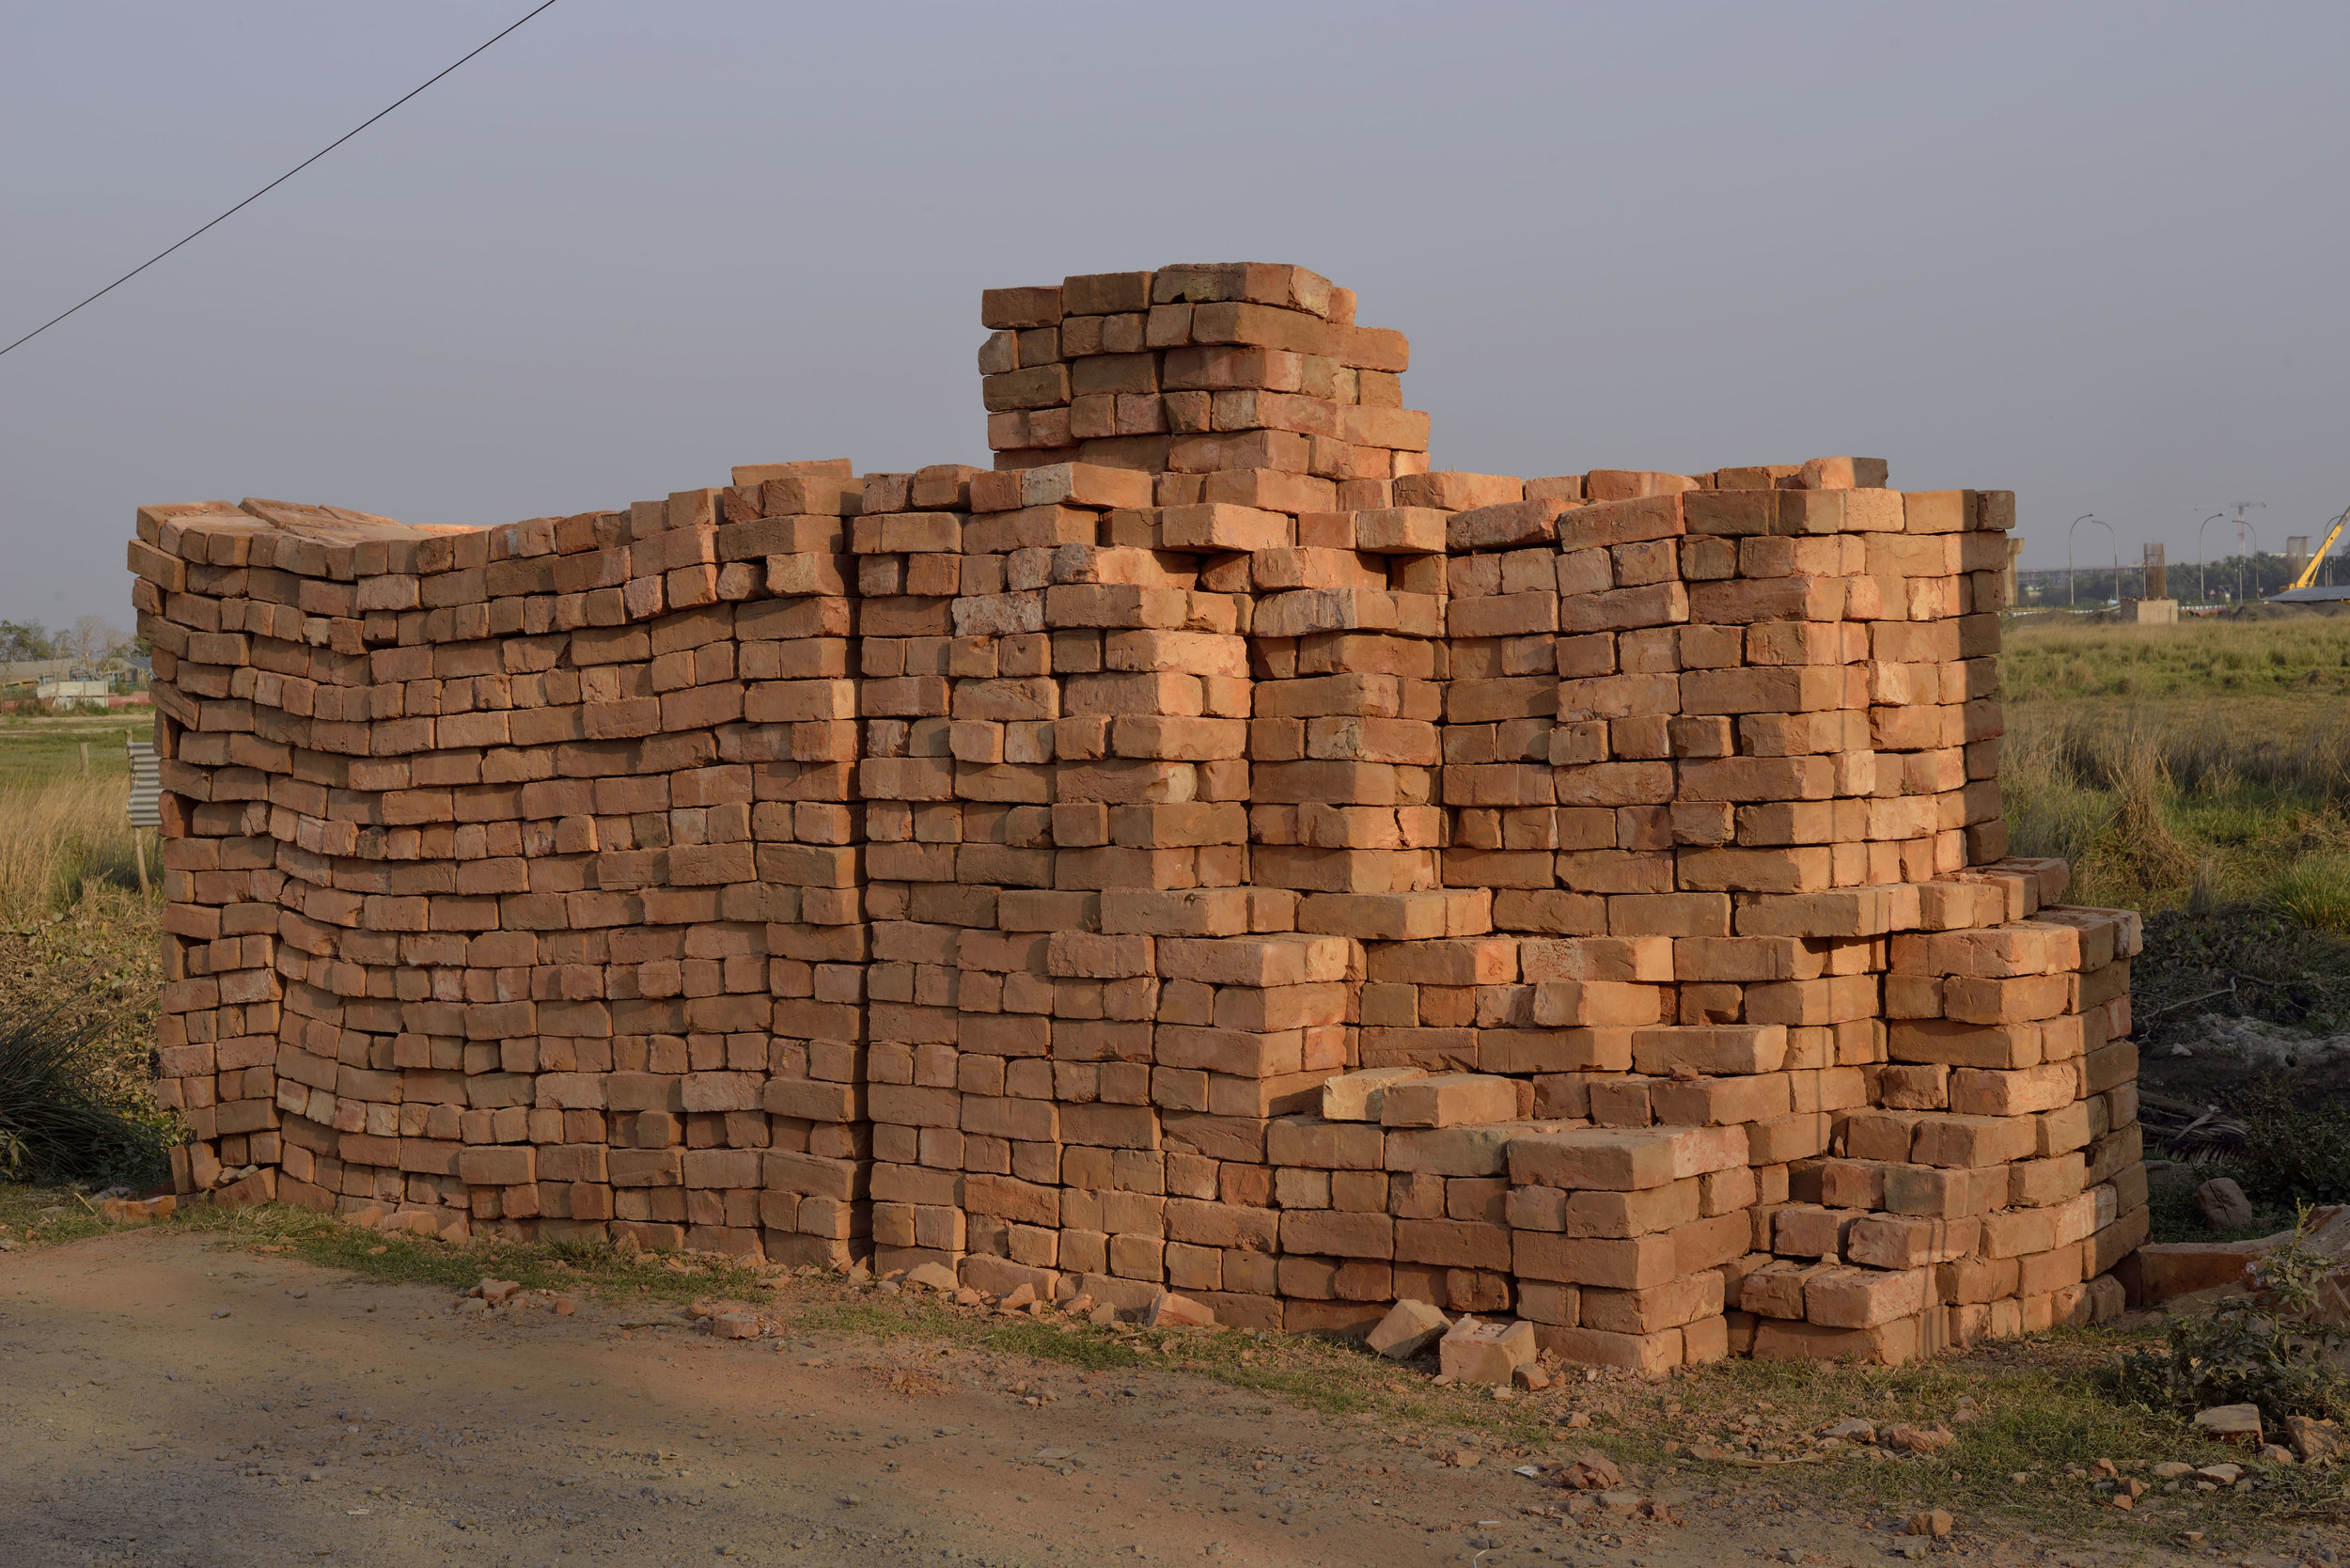 Bricks on the Outskirts of Kolkata, India